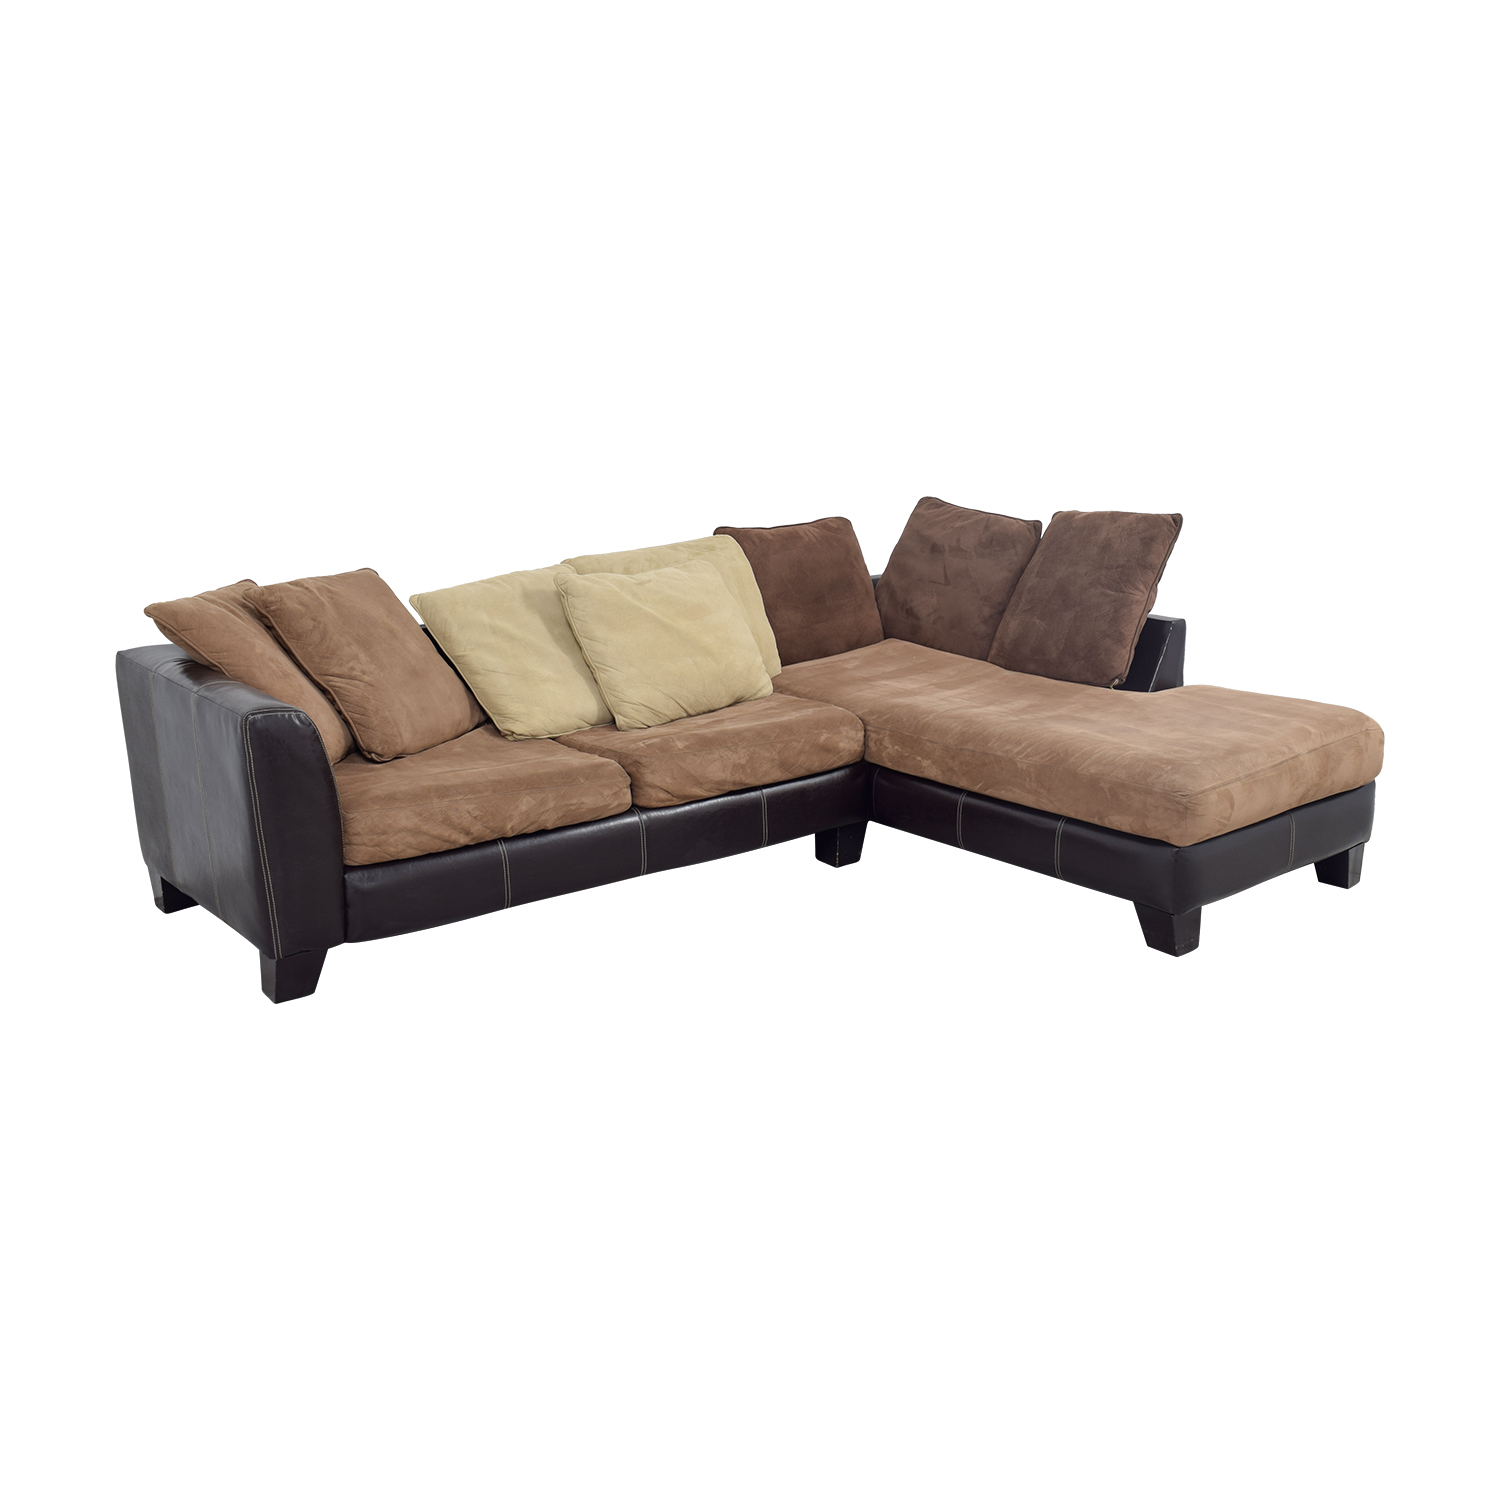 albany industries leather sofa what colour goes with blue walls 89 off brown chaise